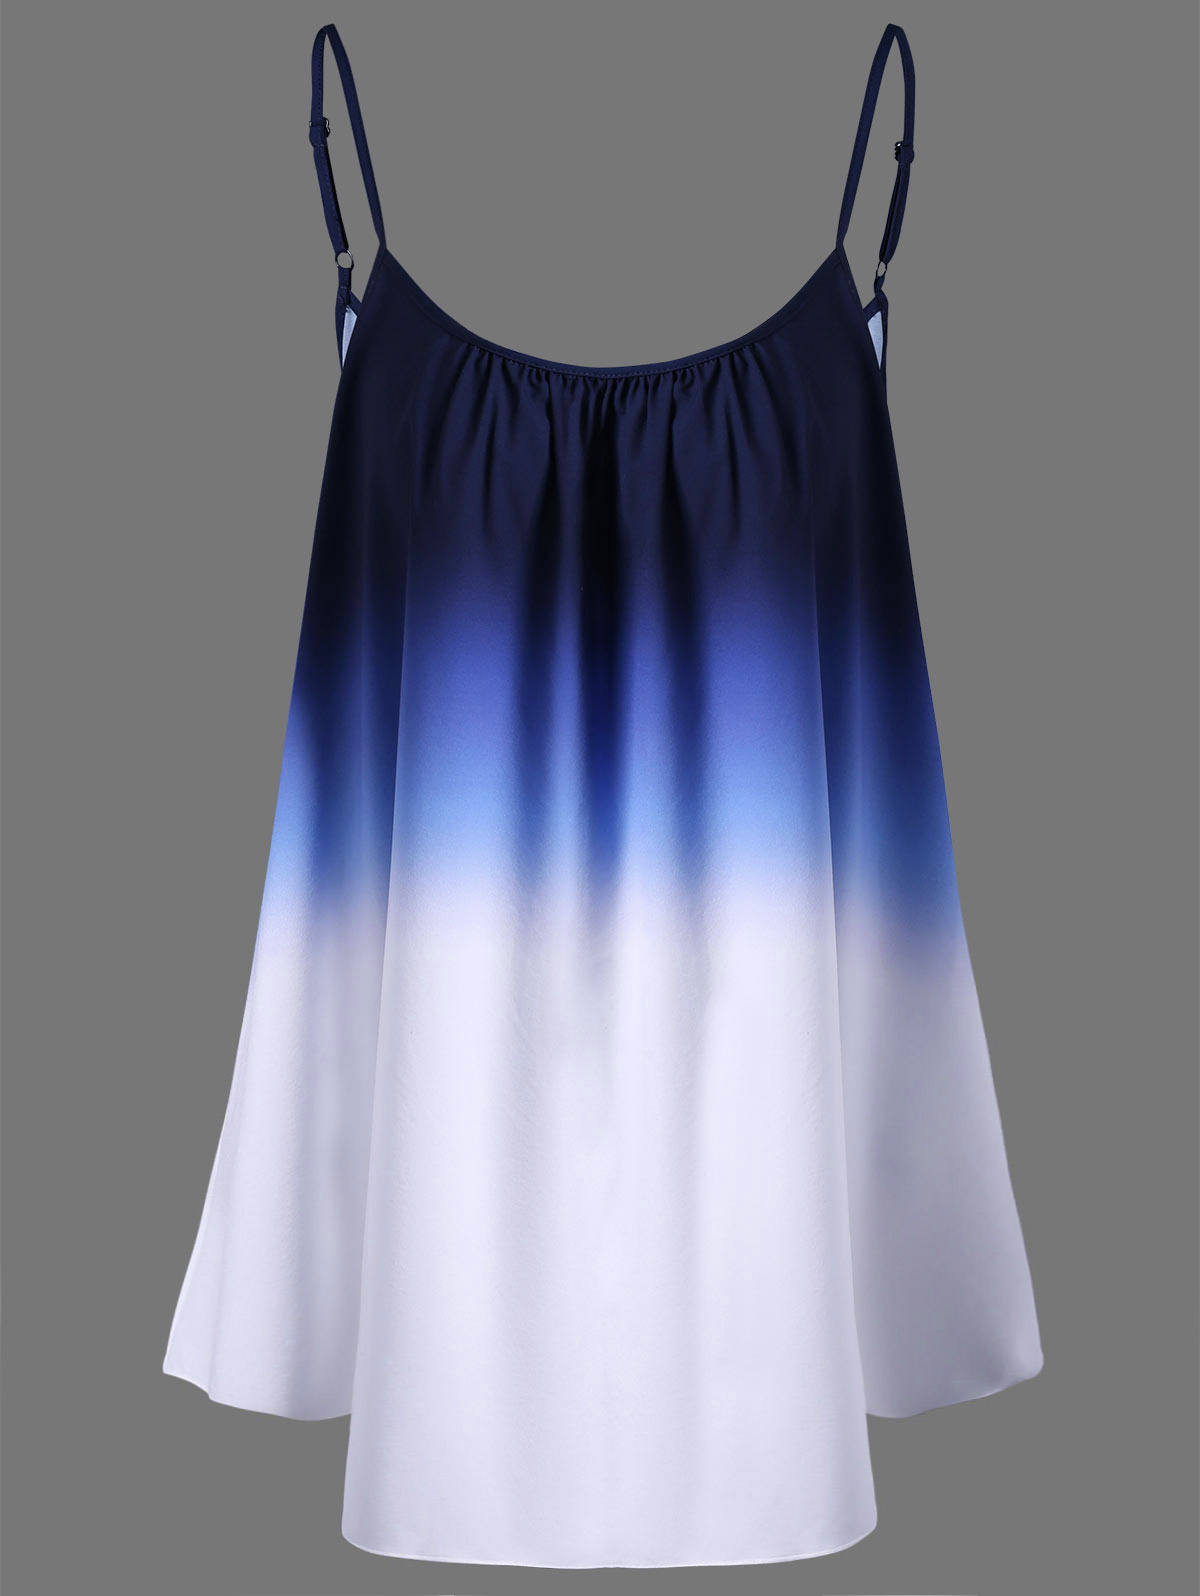 Wipalo Plus Size 5XL Women Clothing Ombre Print Cami Top Tie Dye Camisole Summer Sleeveless Beach Vest Ladies Tops Big Size